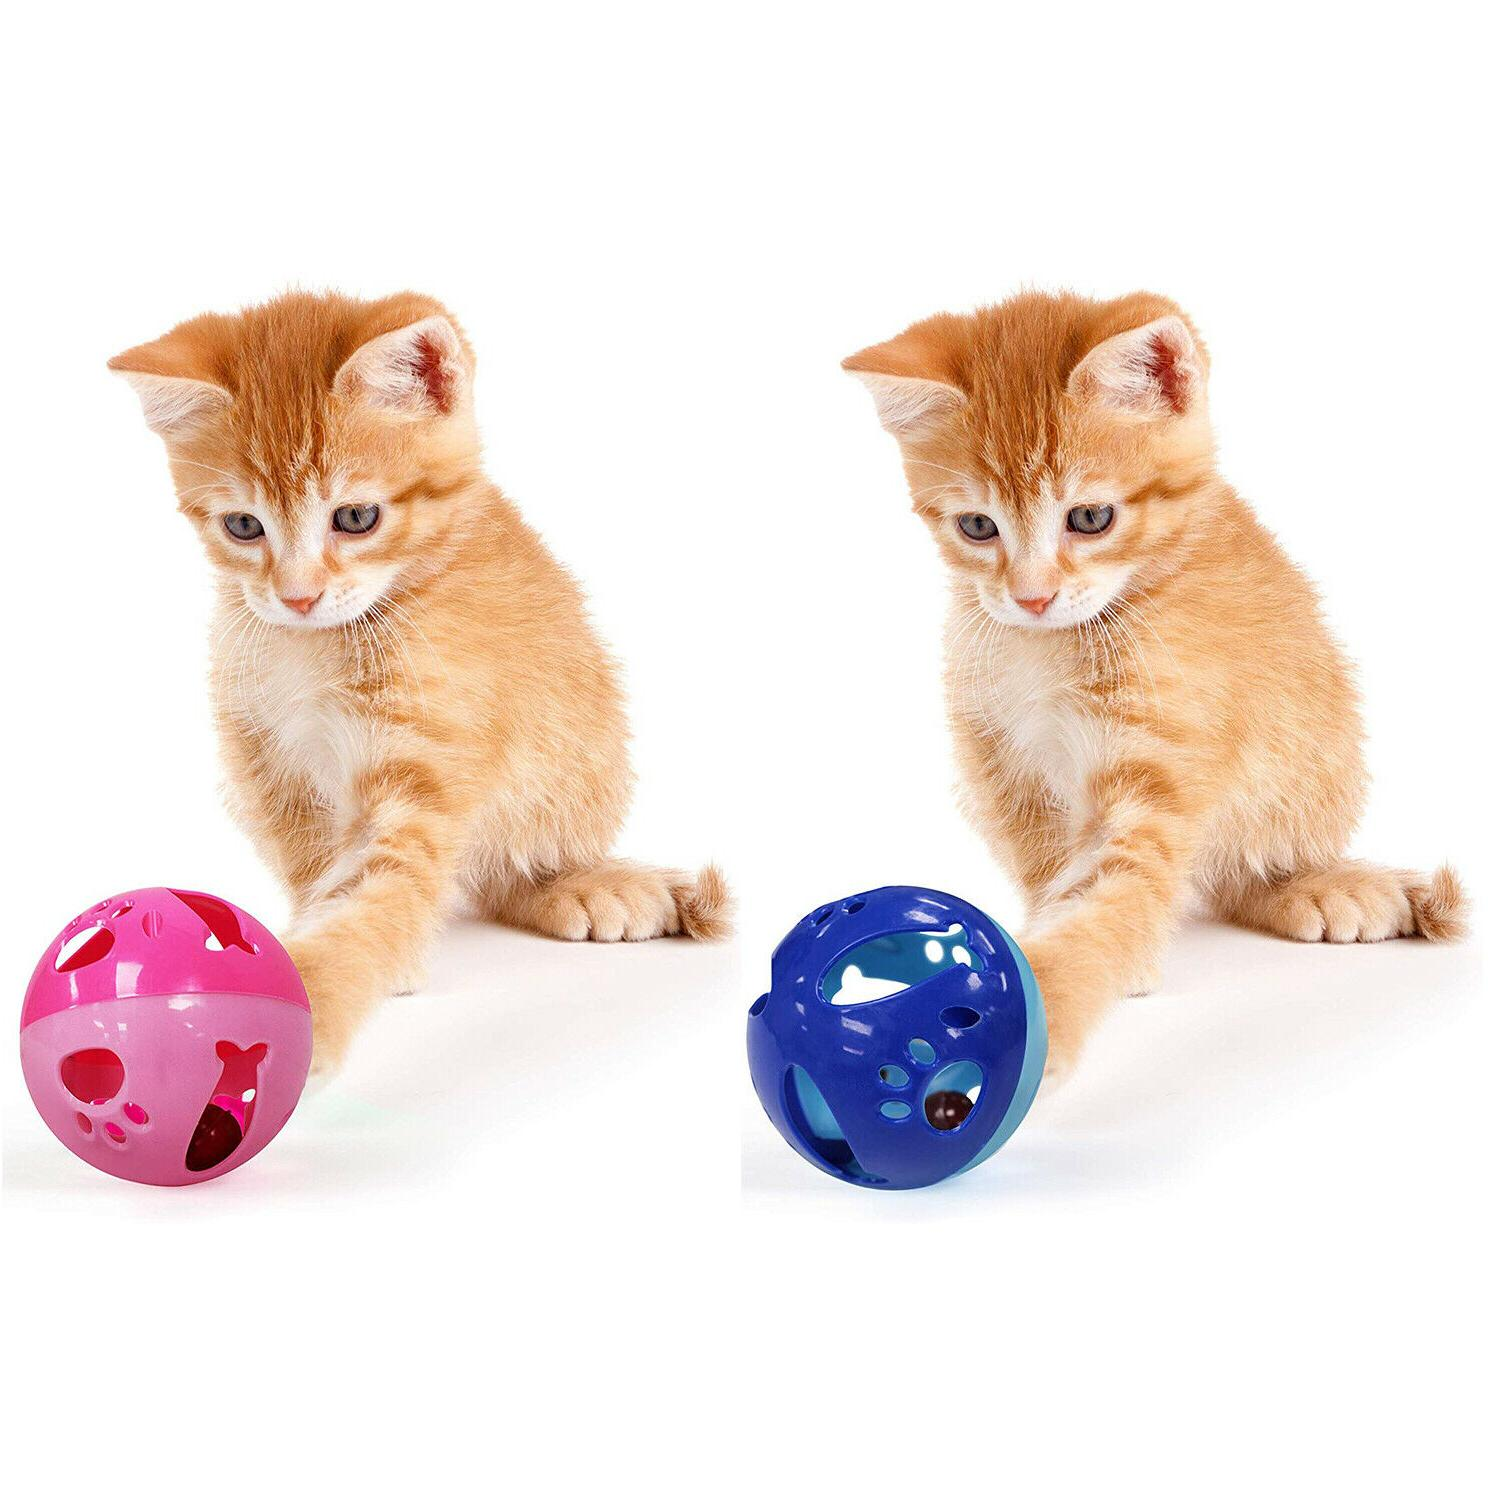 large size cat ball with bell toy